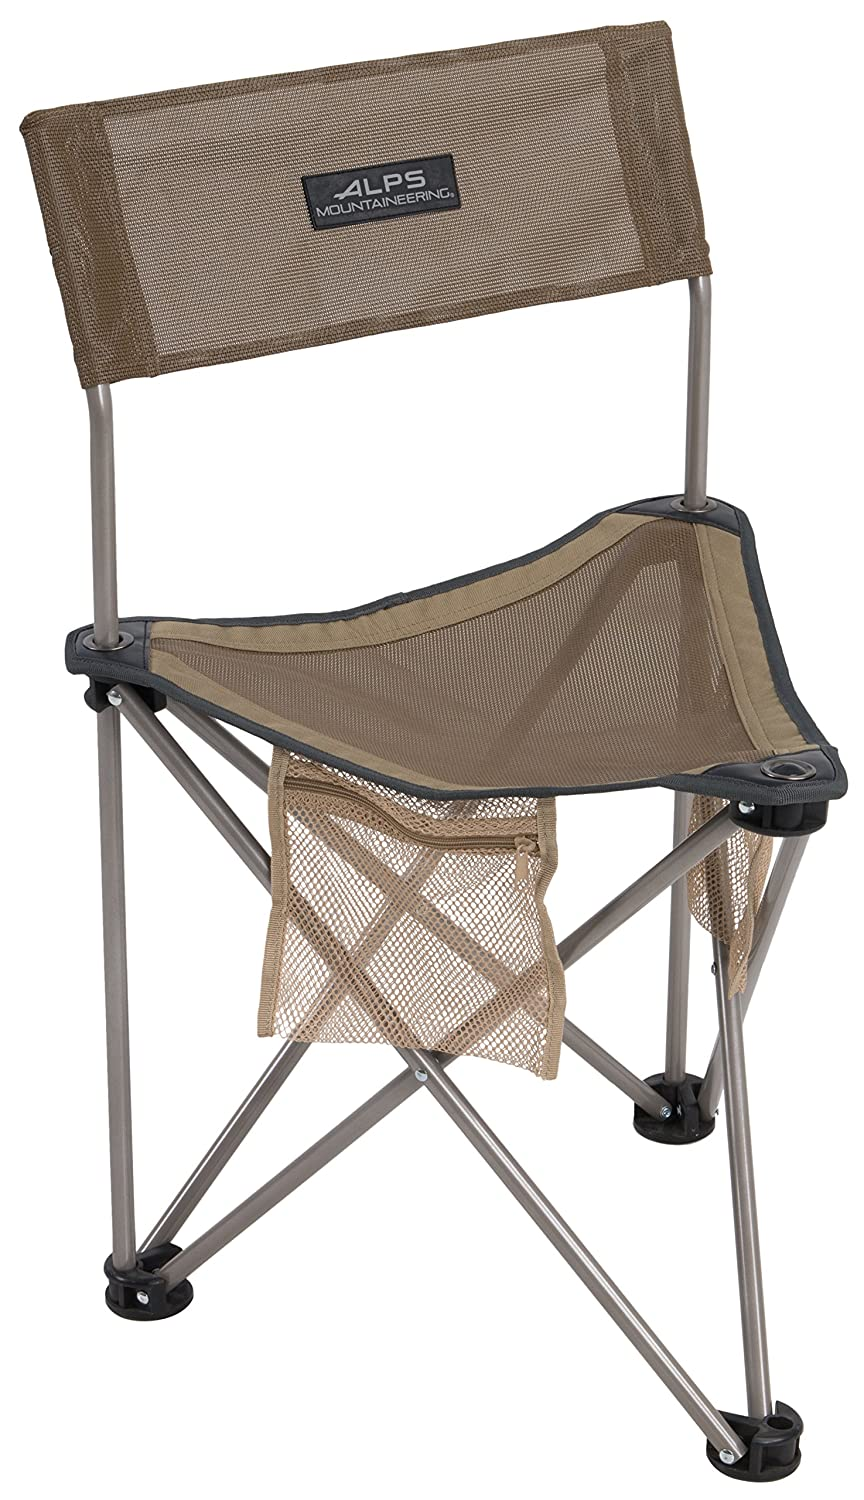 Great Camping Stool For Overweight People